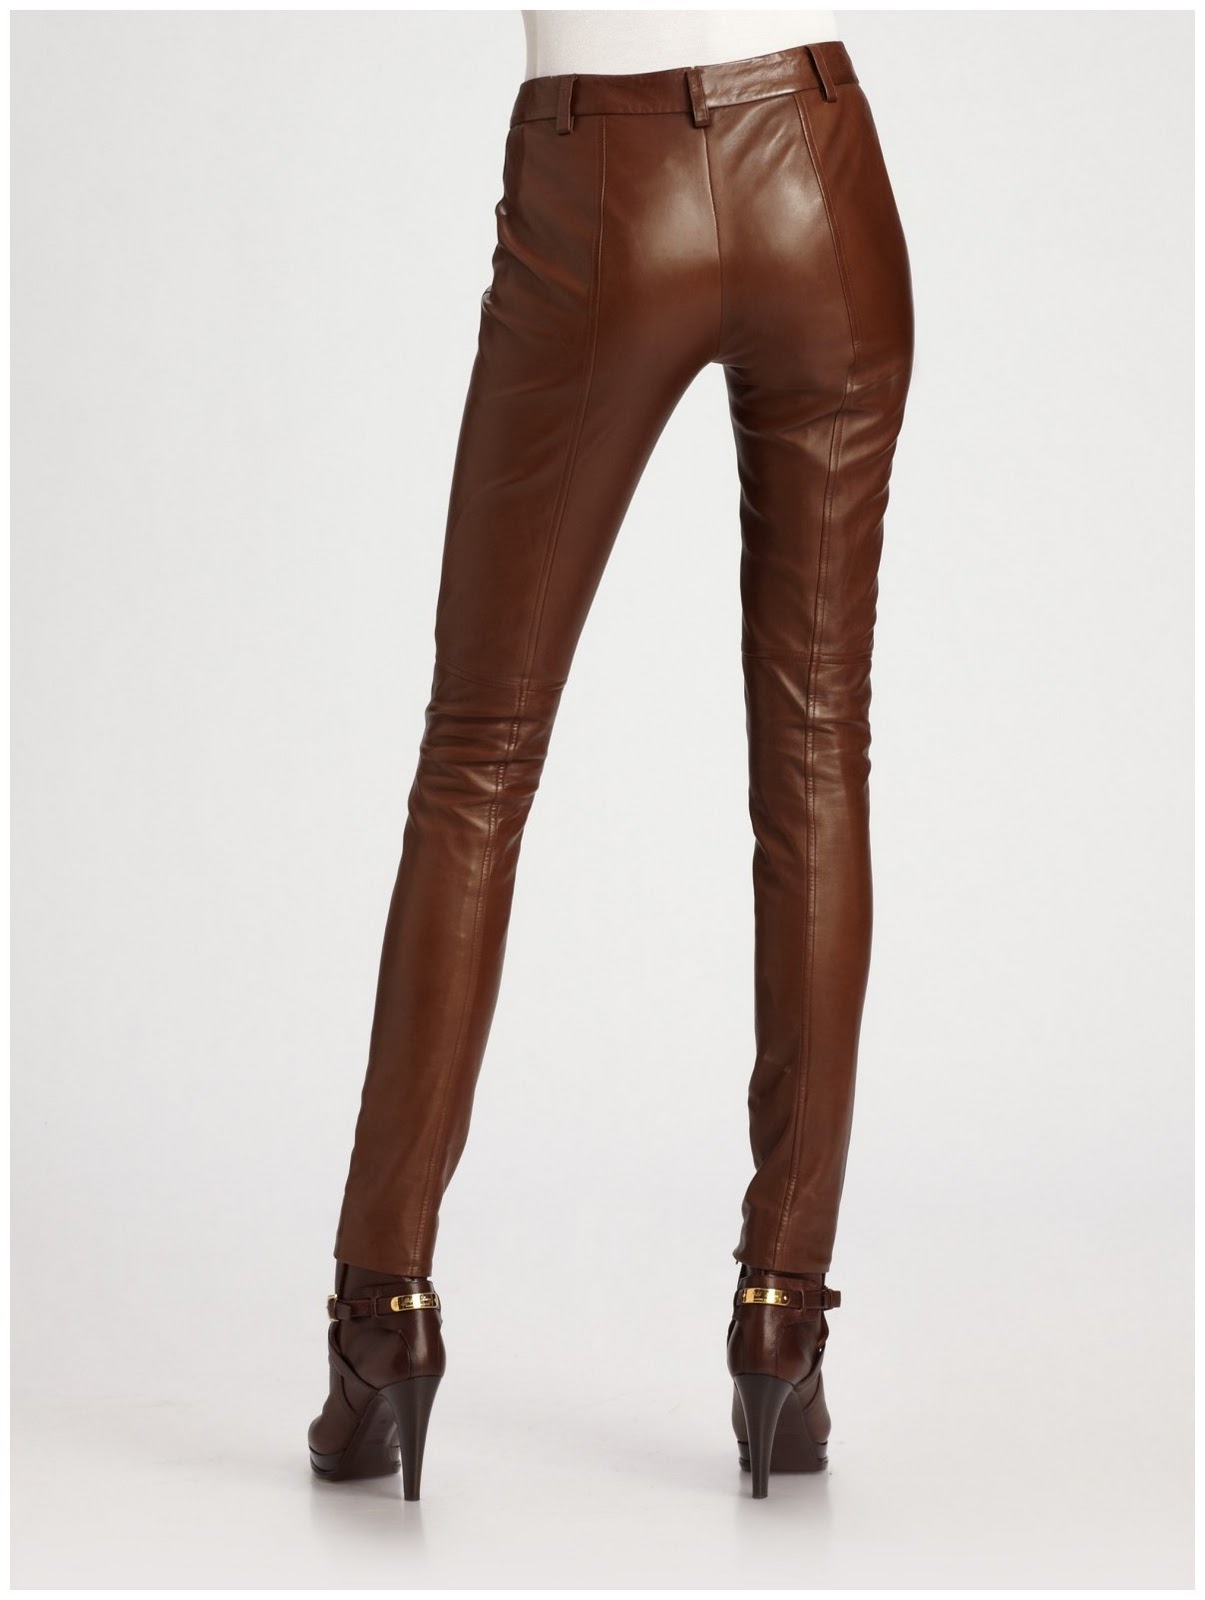 Winter allure leather pants london fashion chronicles